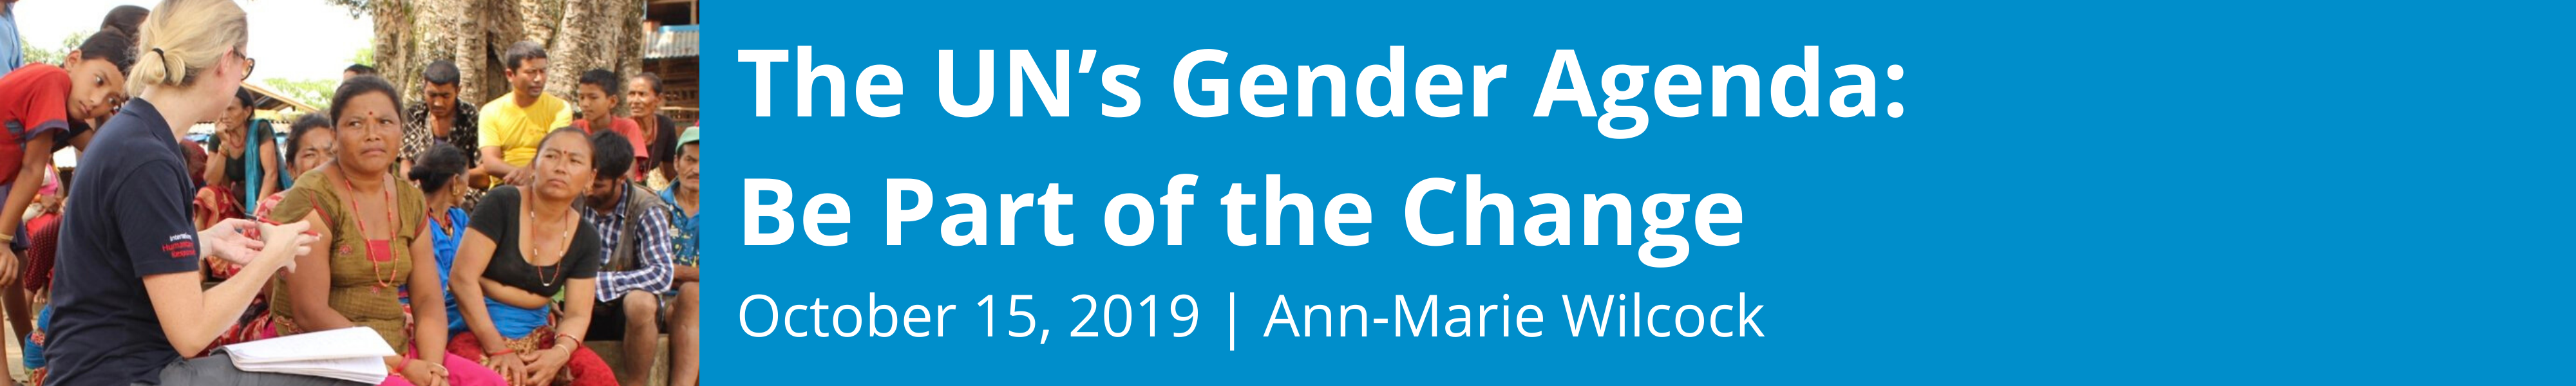 The UN's Gender Agenda: Be Part of the Change; October 15, 2019; Ann-Marie Wilcock